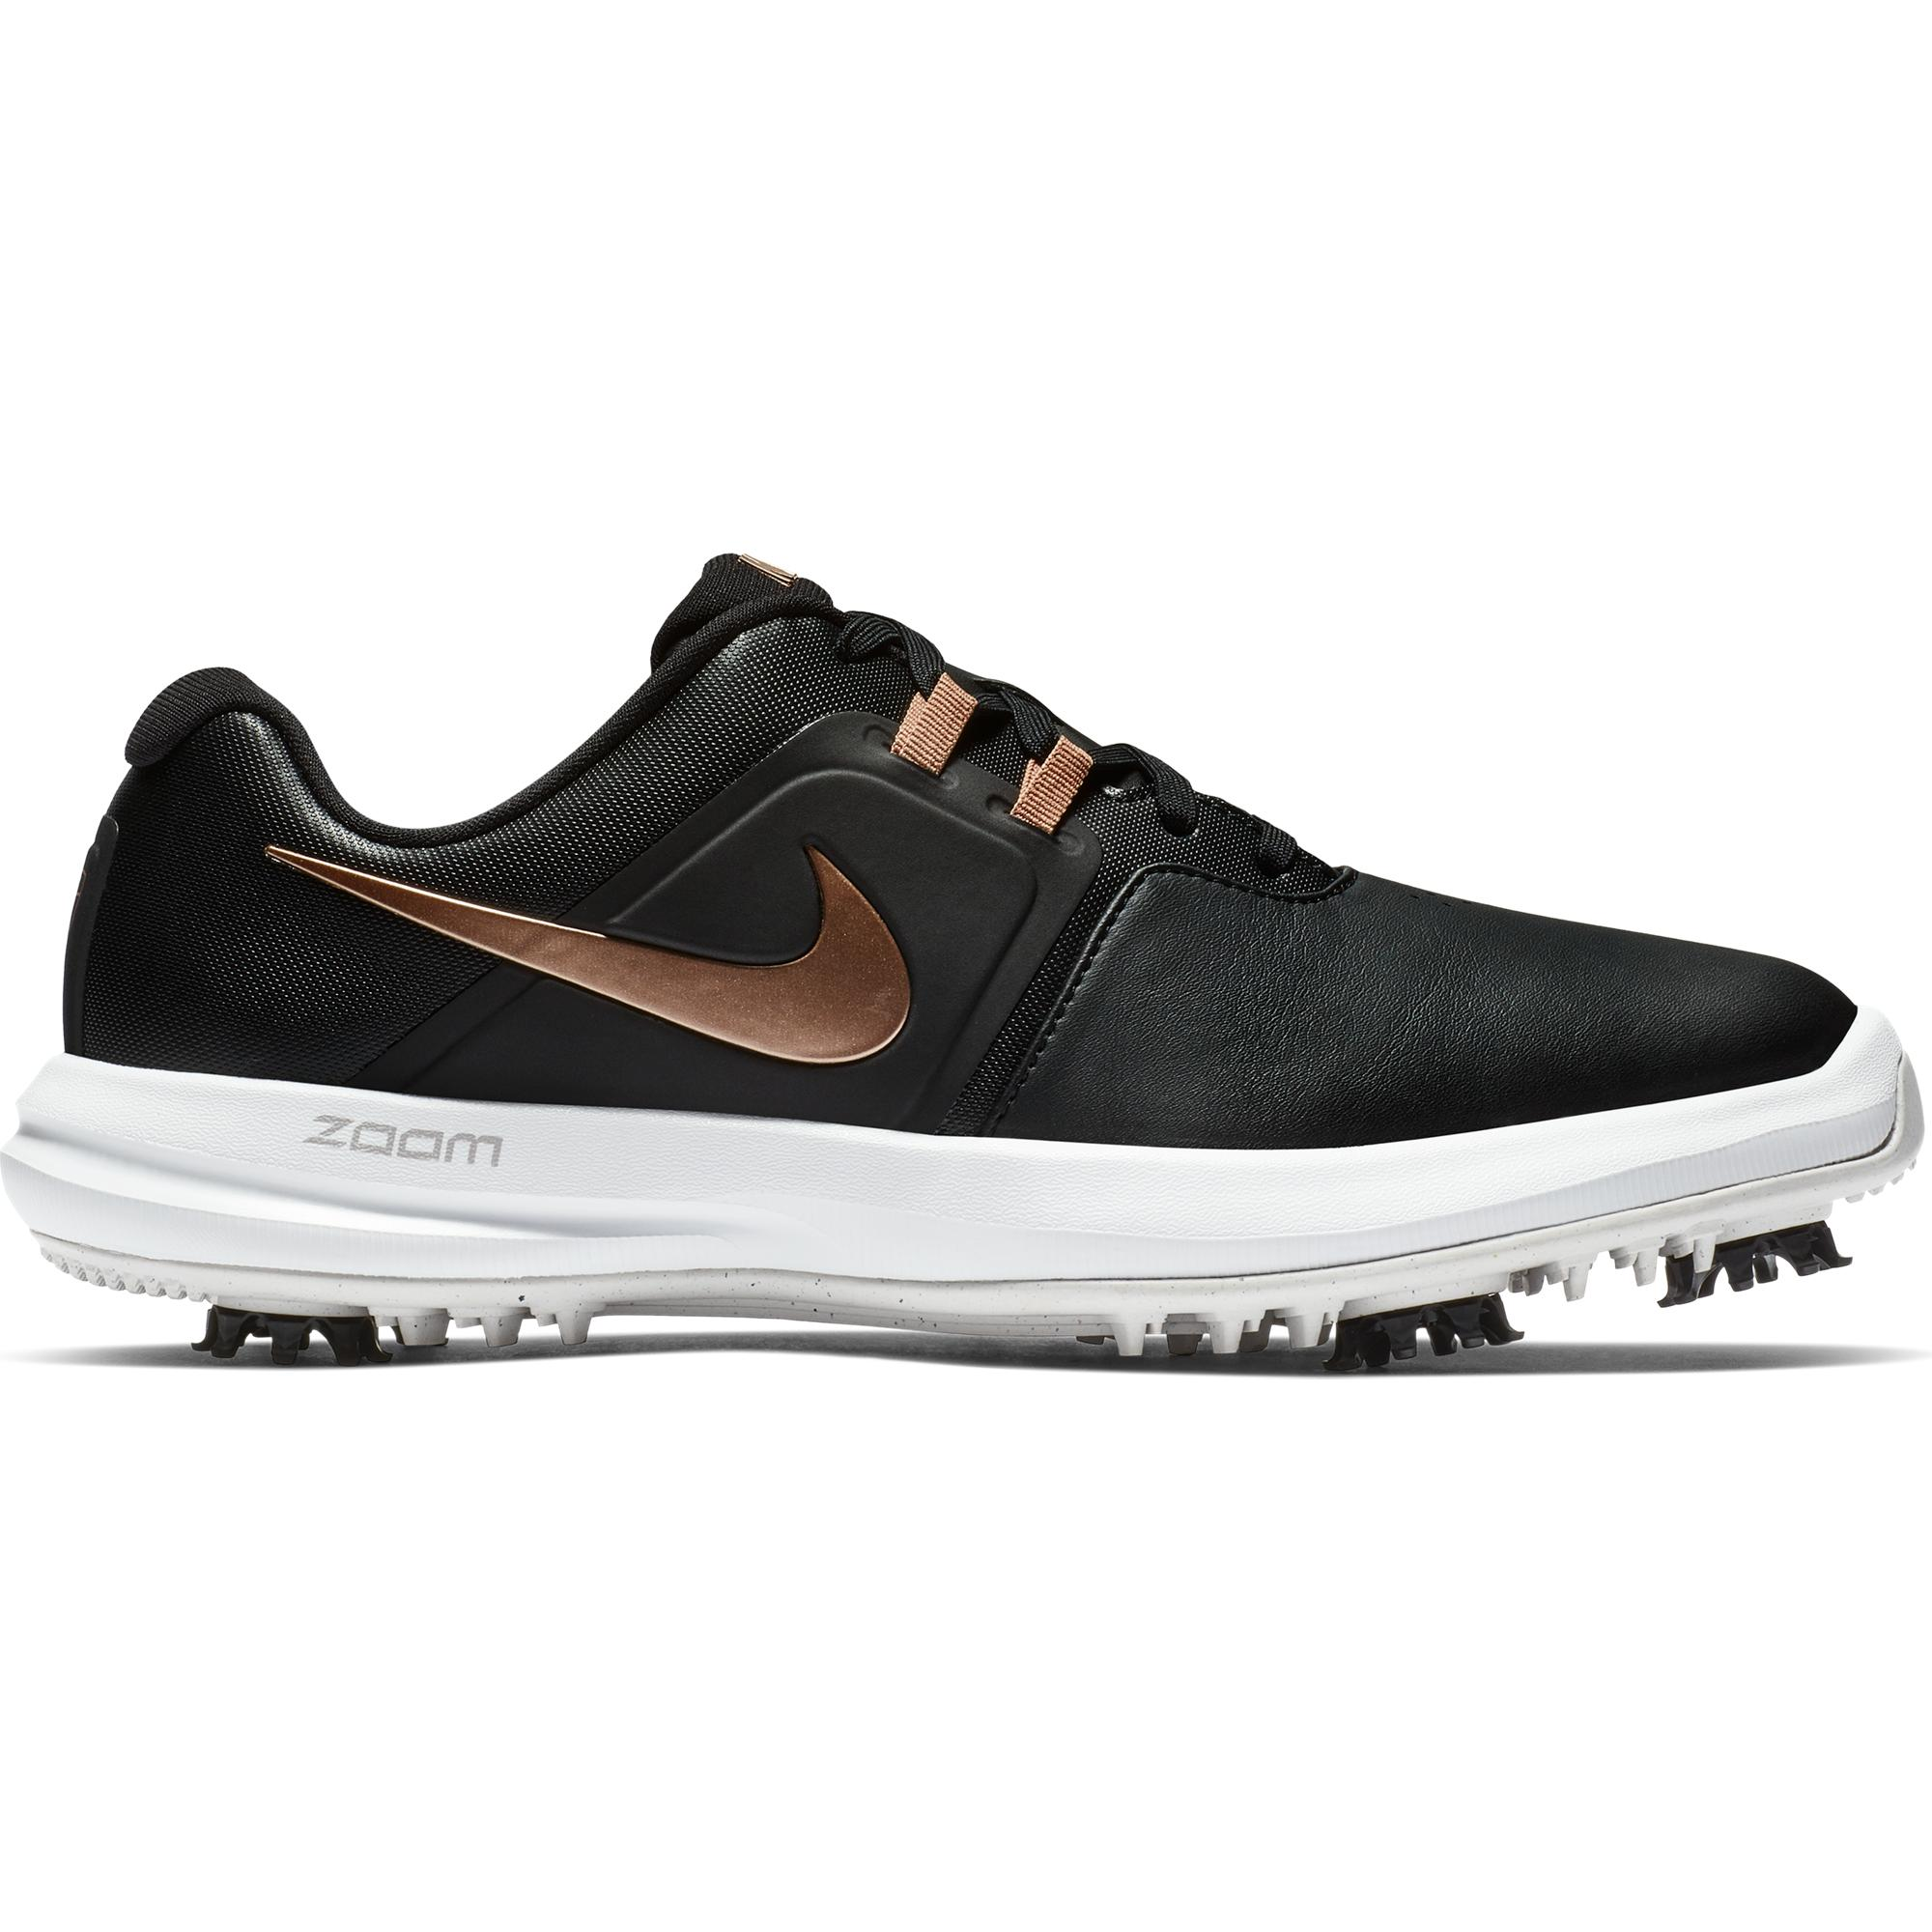 Women's Air Zoom Victory Spiked Golf Shoe - BLACK/PINK